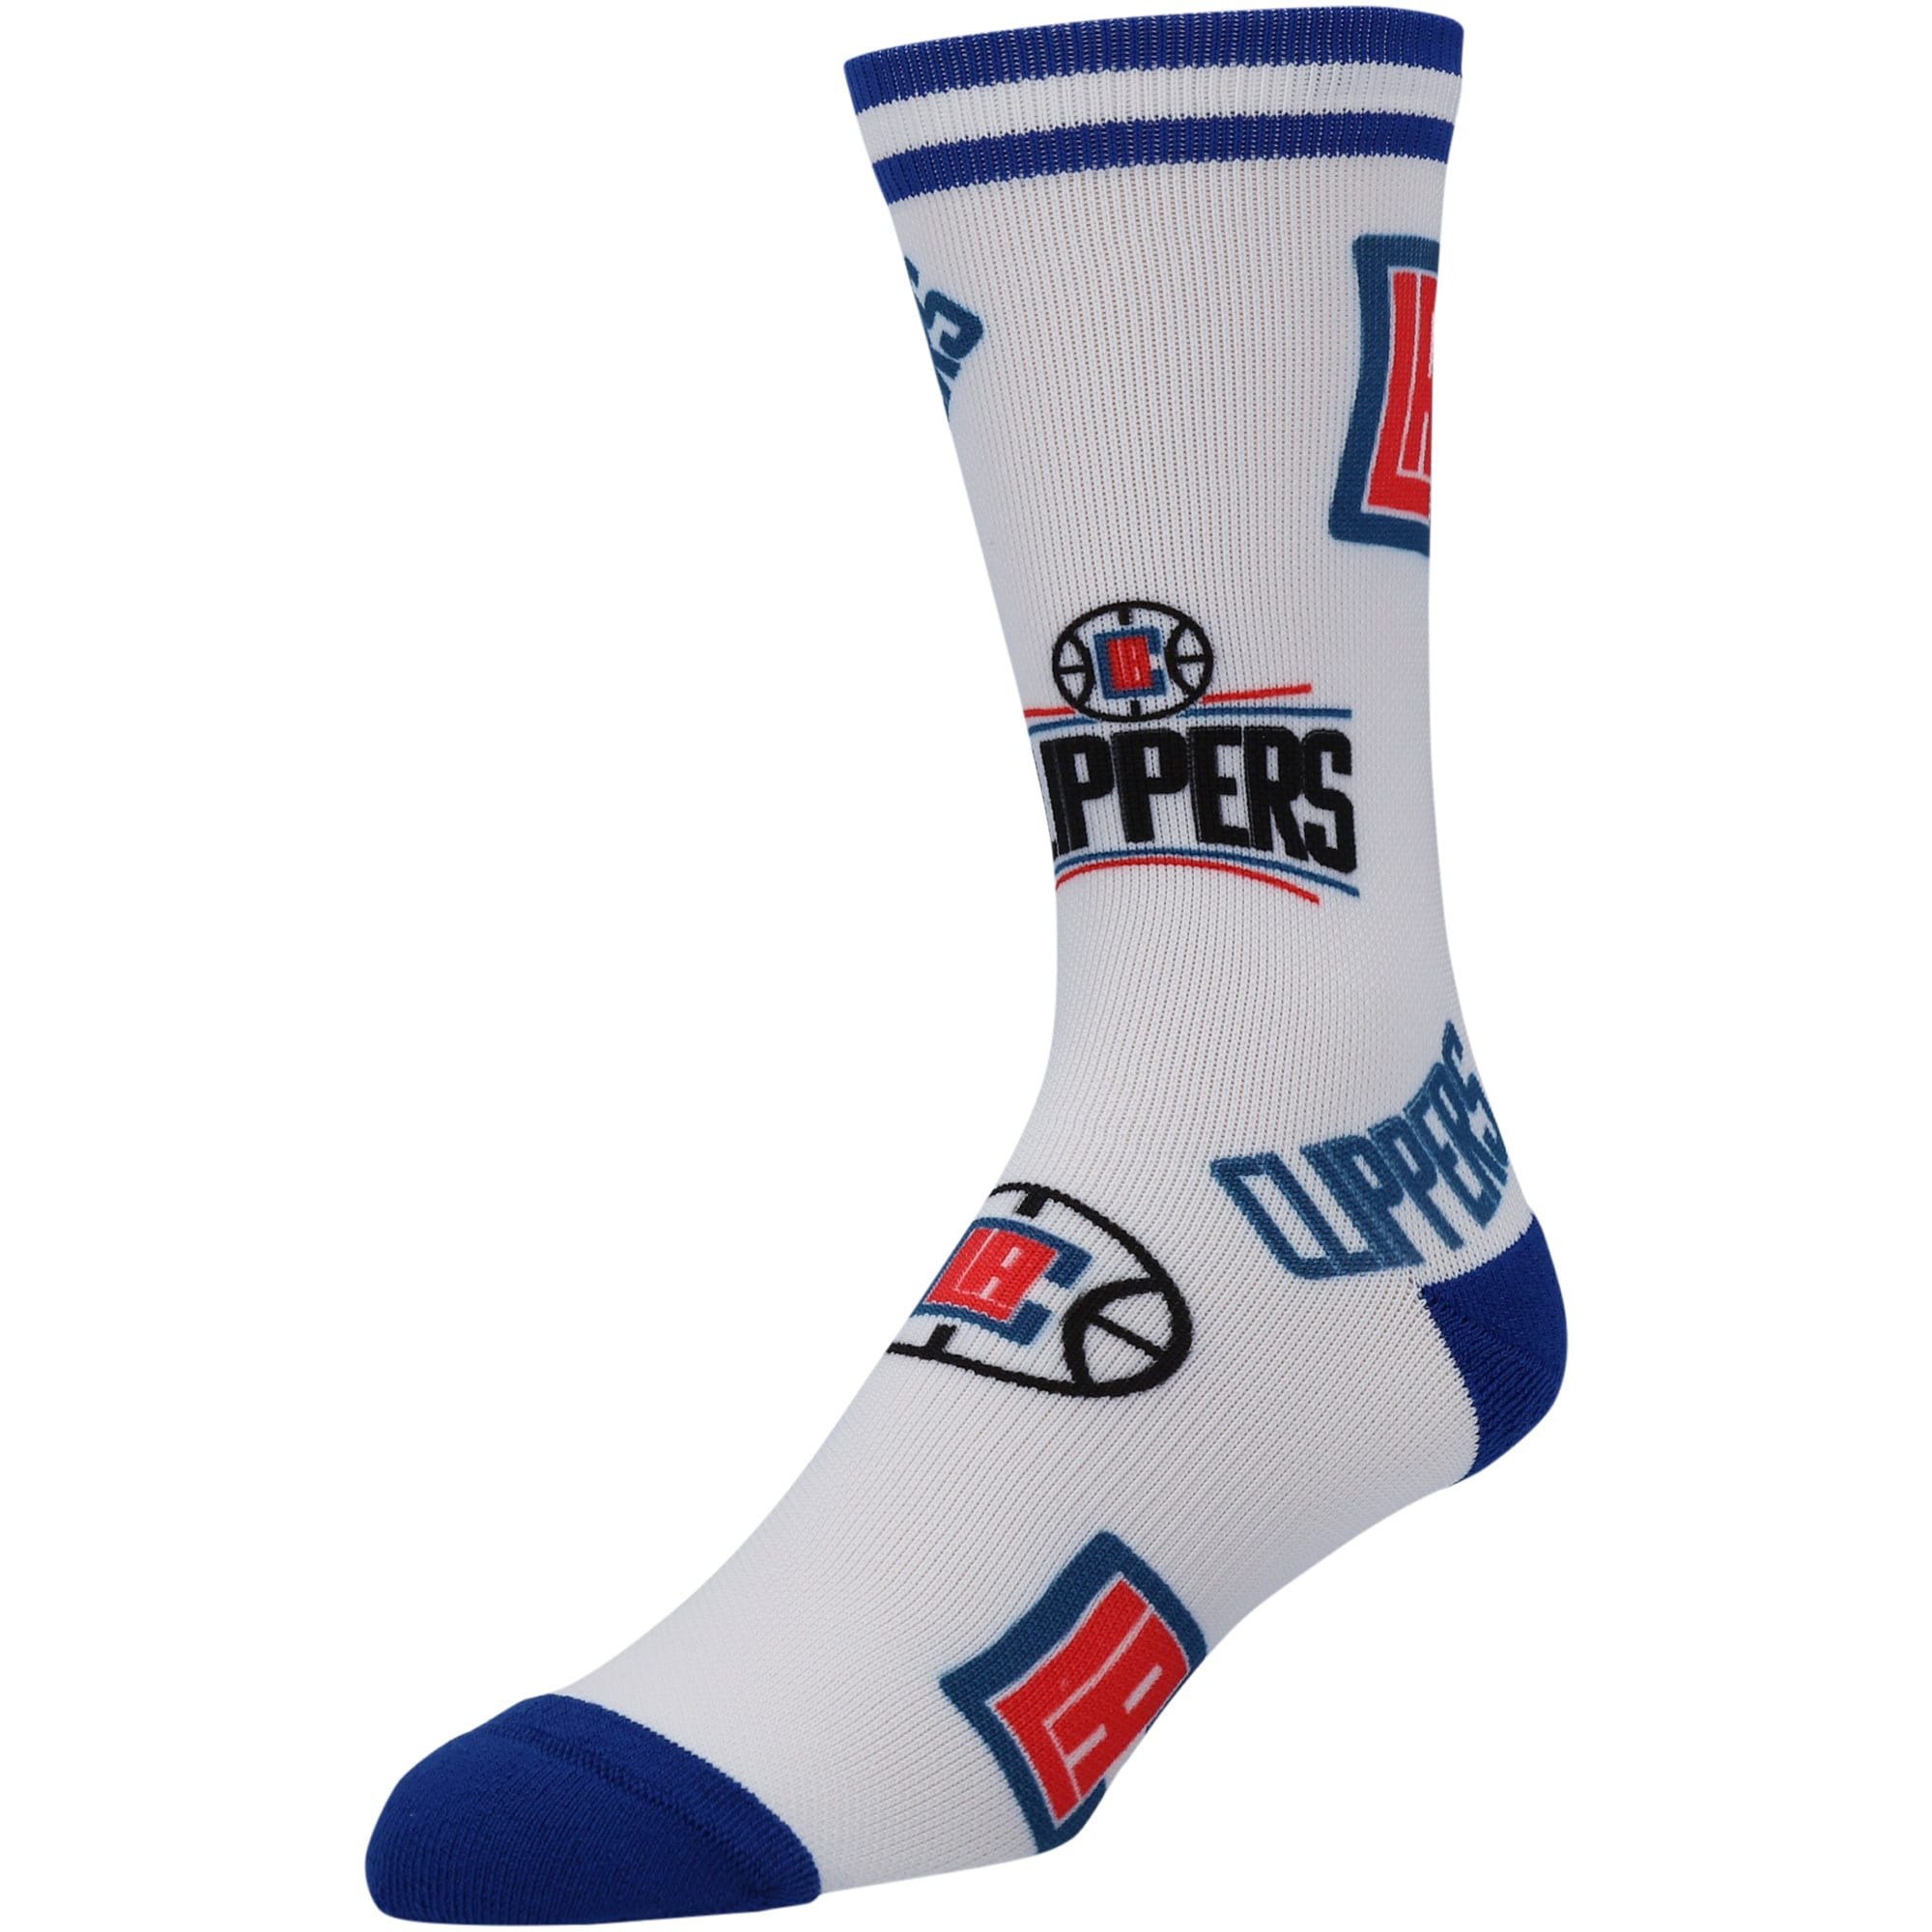 LA Clippers Panel Crew Socks